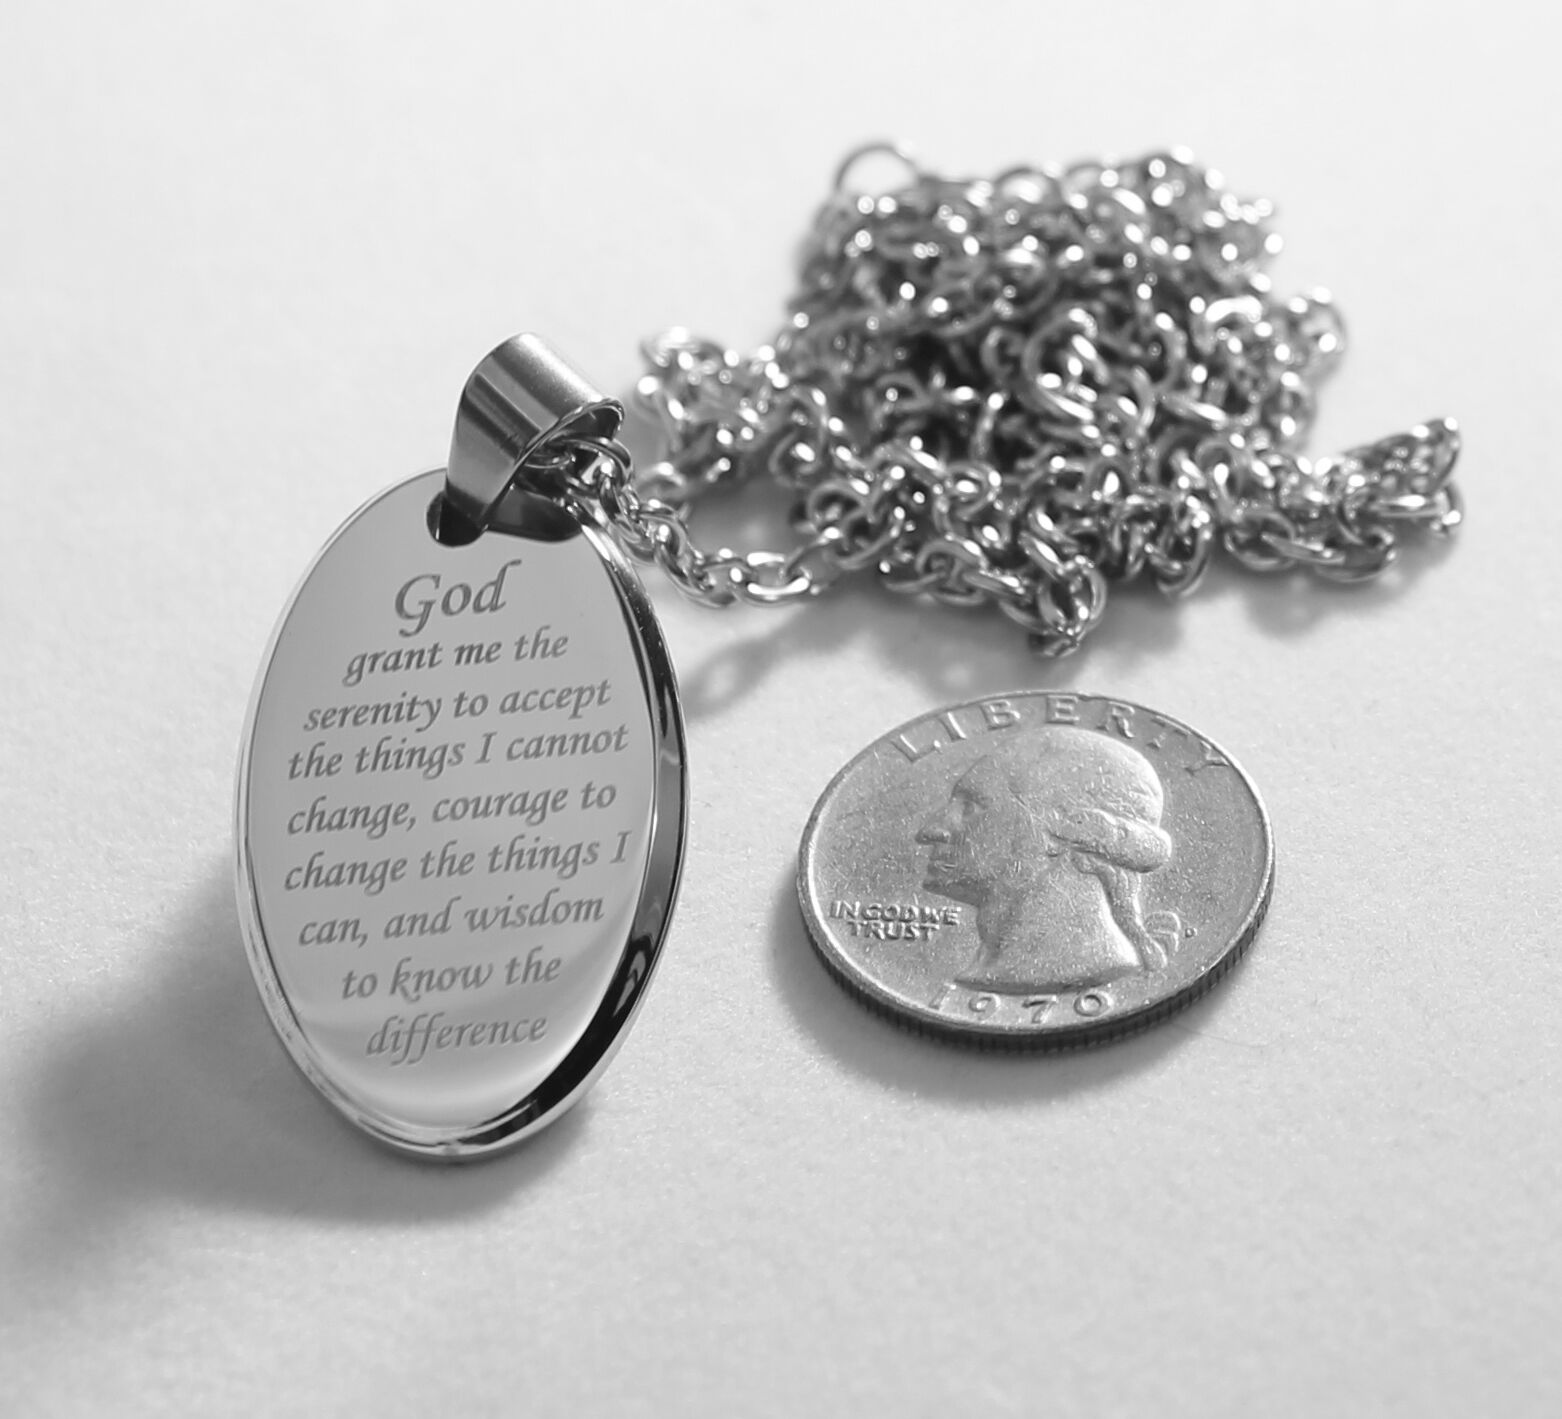 stainless coin chain steel serenity hands with dp amazon free verse jewelry prayer bible com christian praying medal necklace pendant